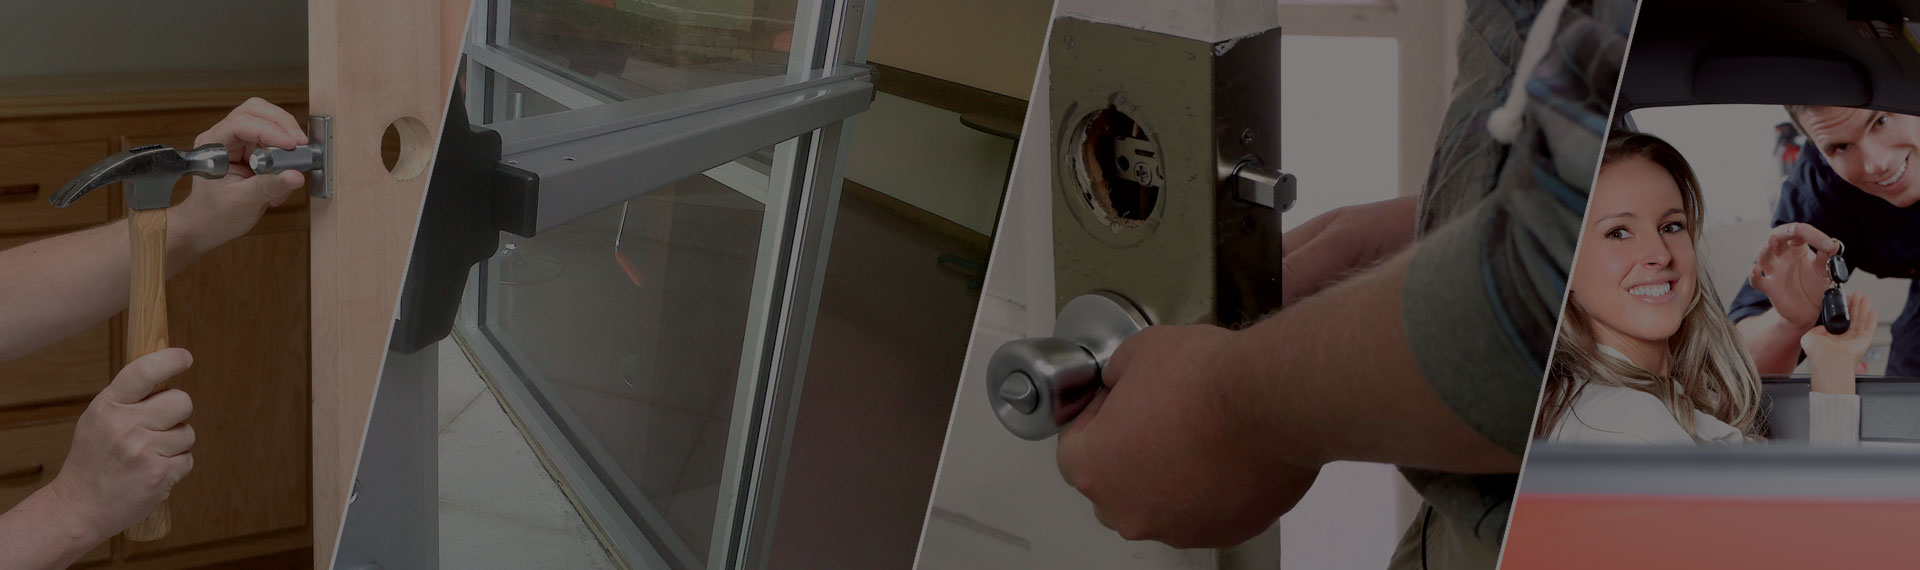 Inver Grove Heights Locksmith Services MN